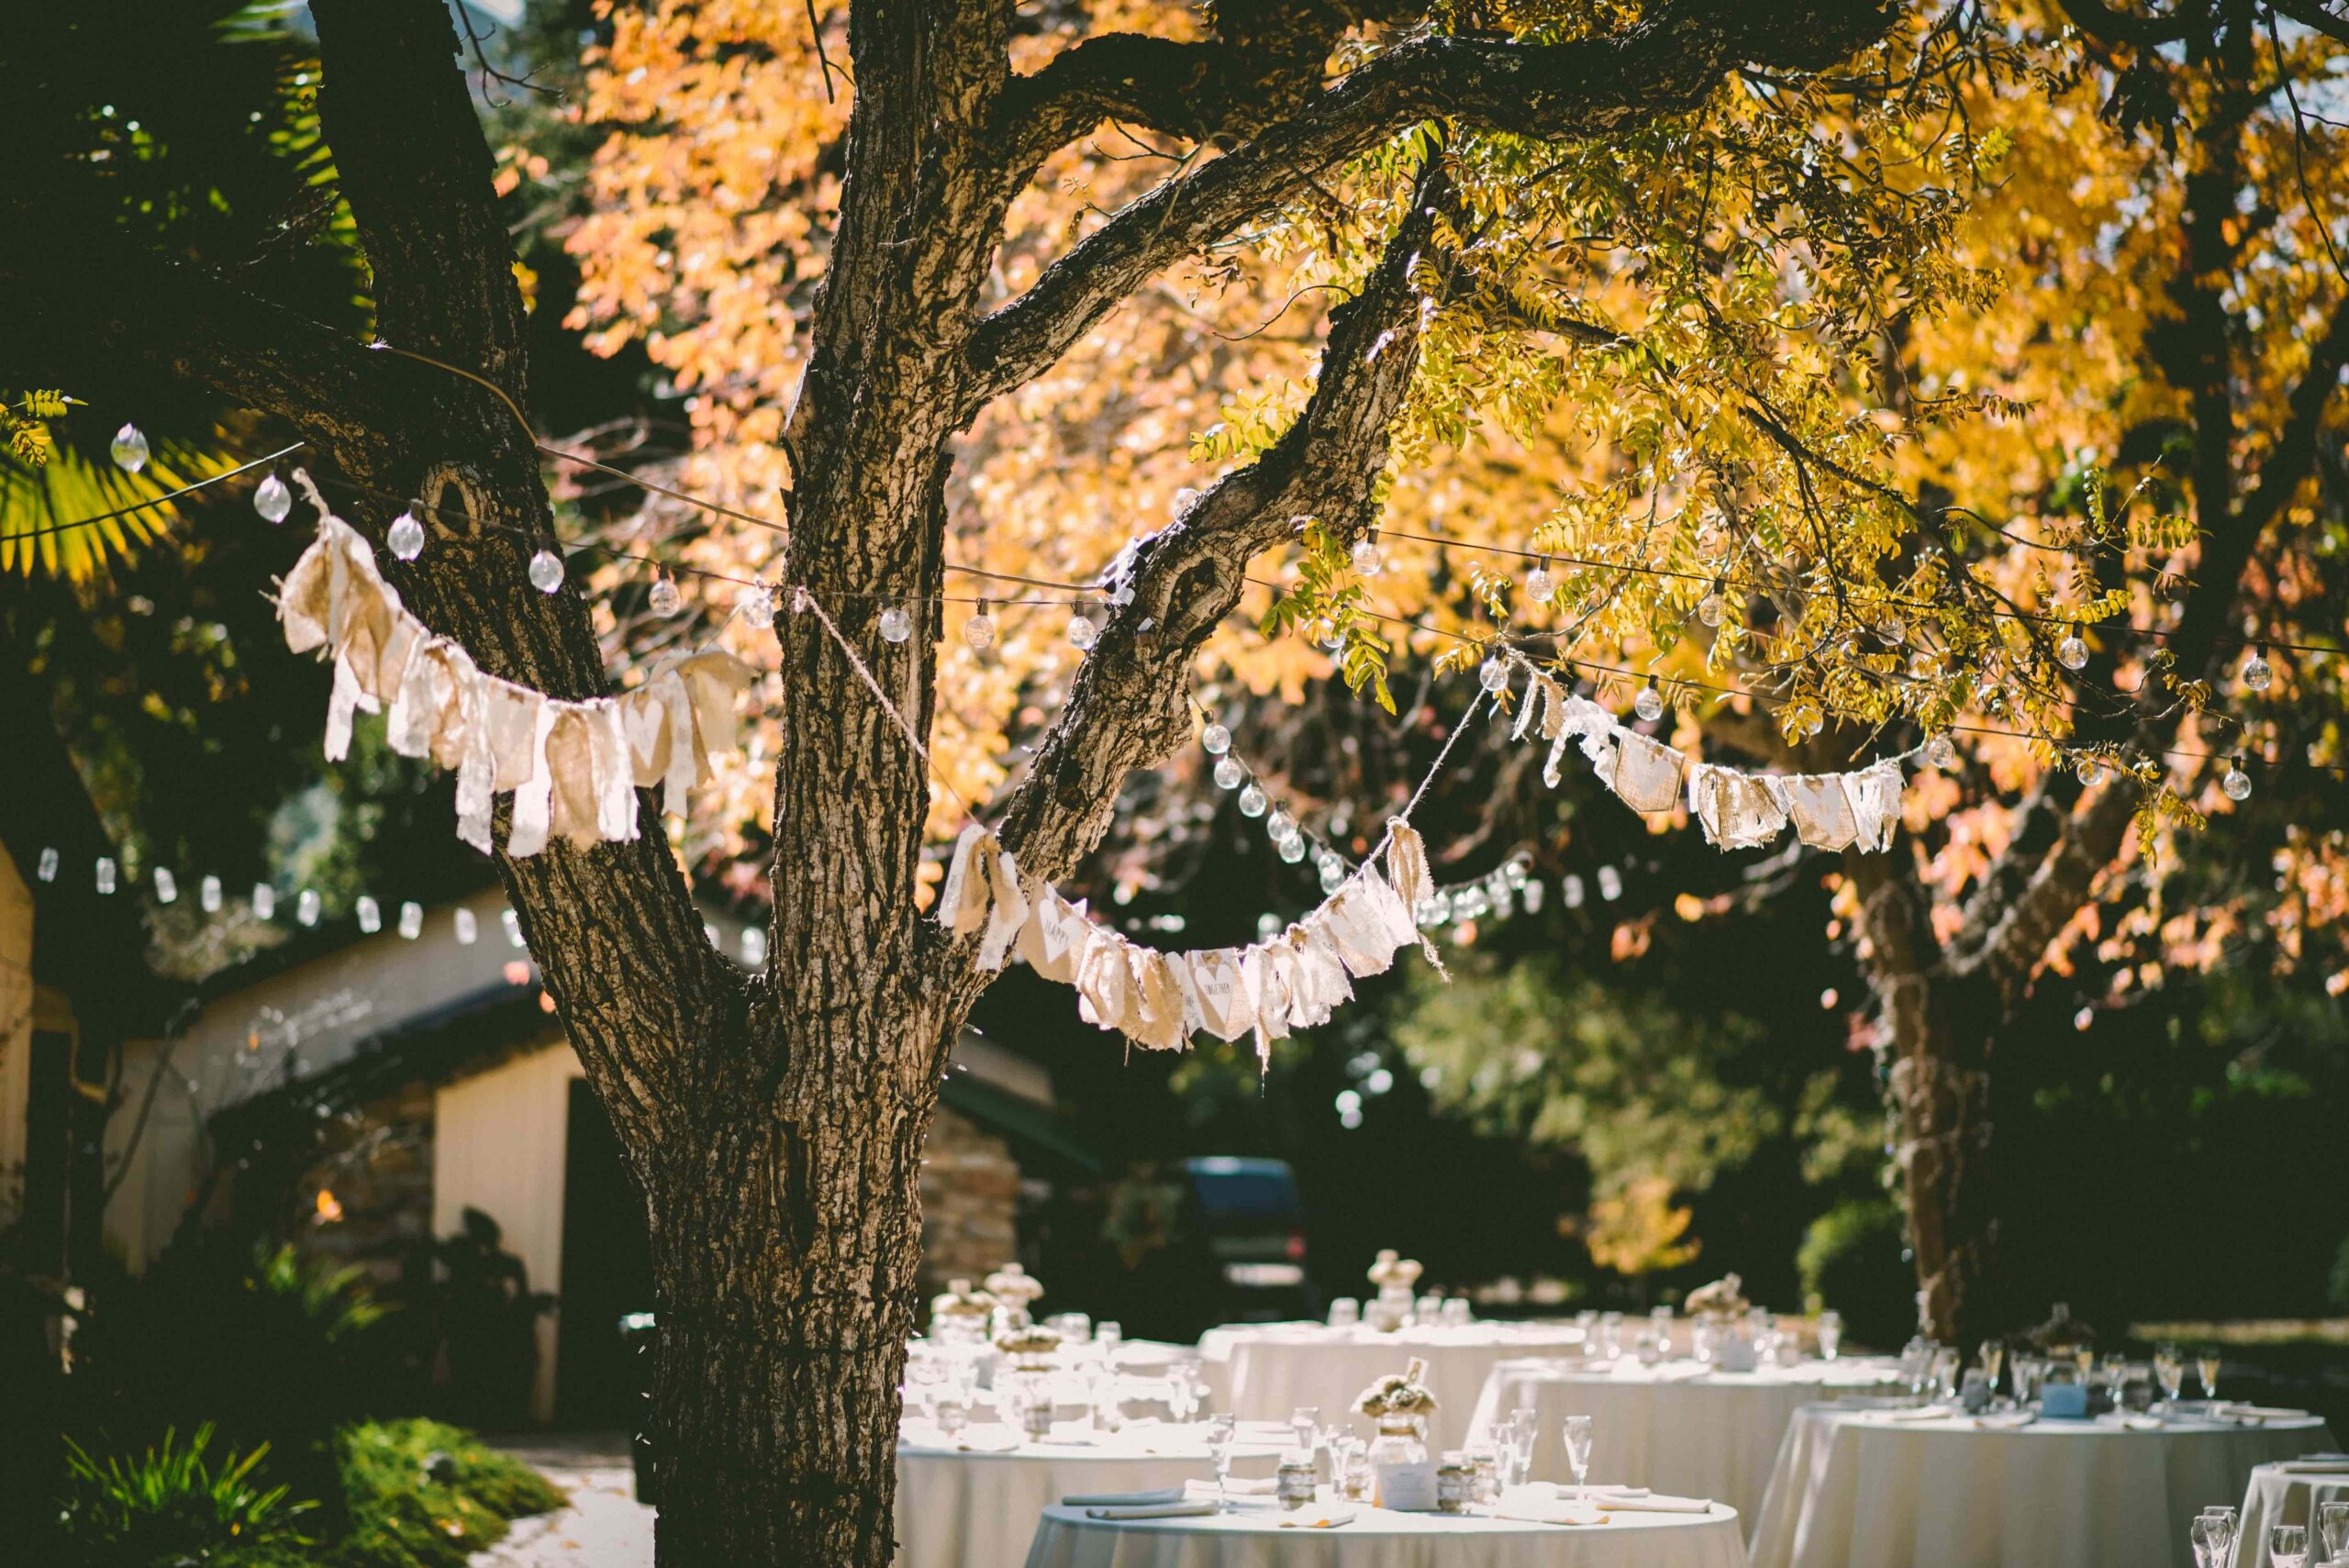 outdoor event under a tree